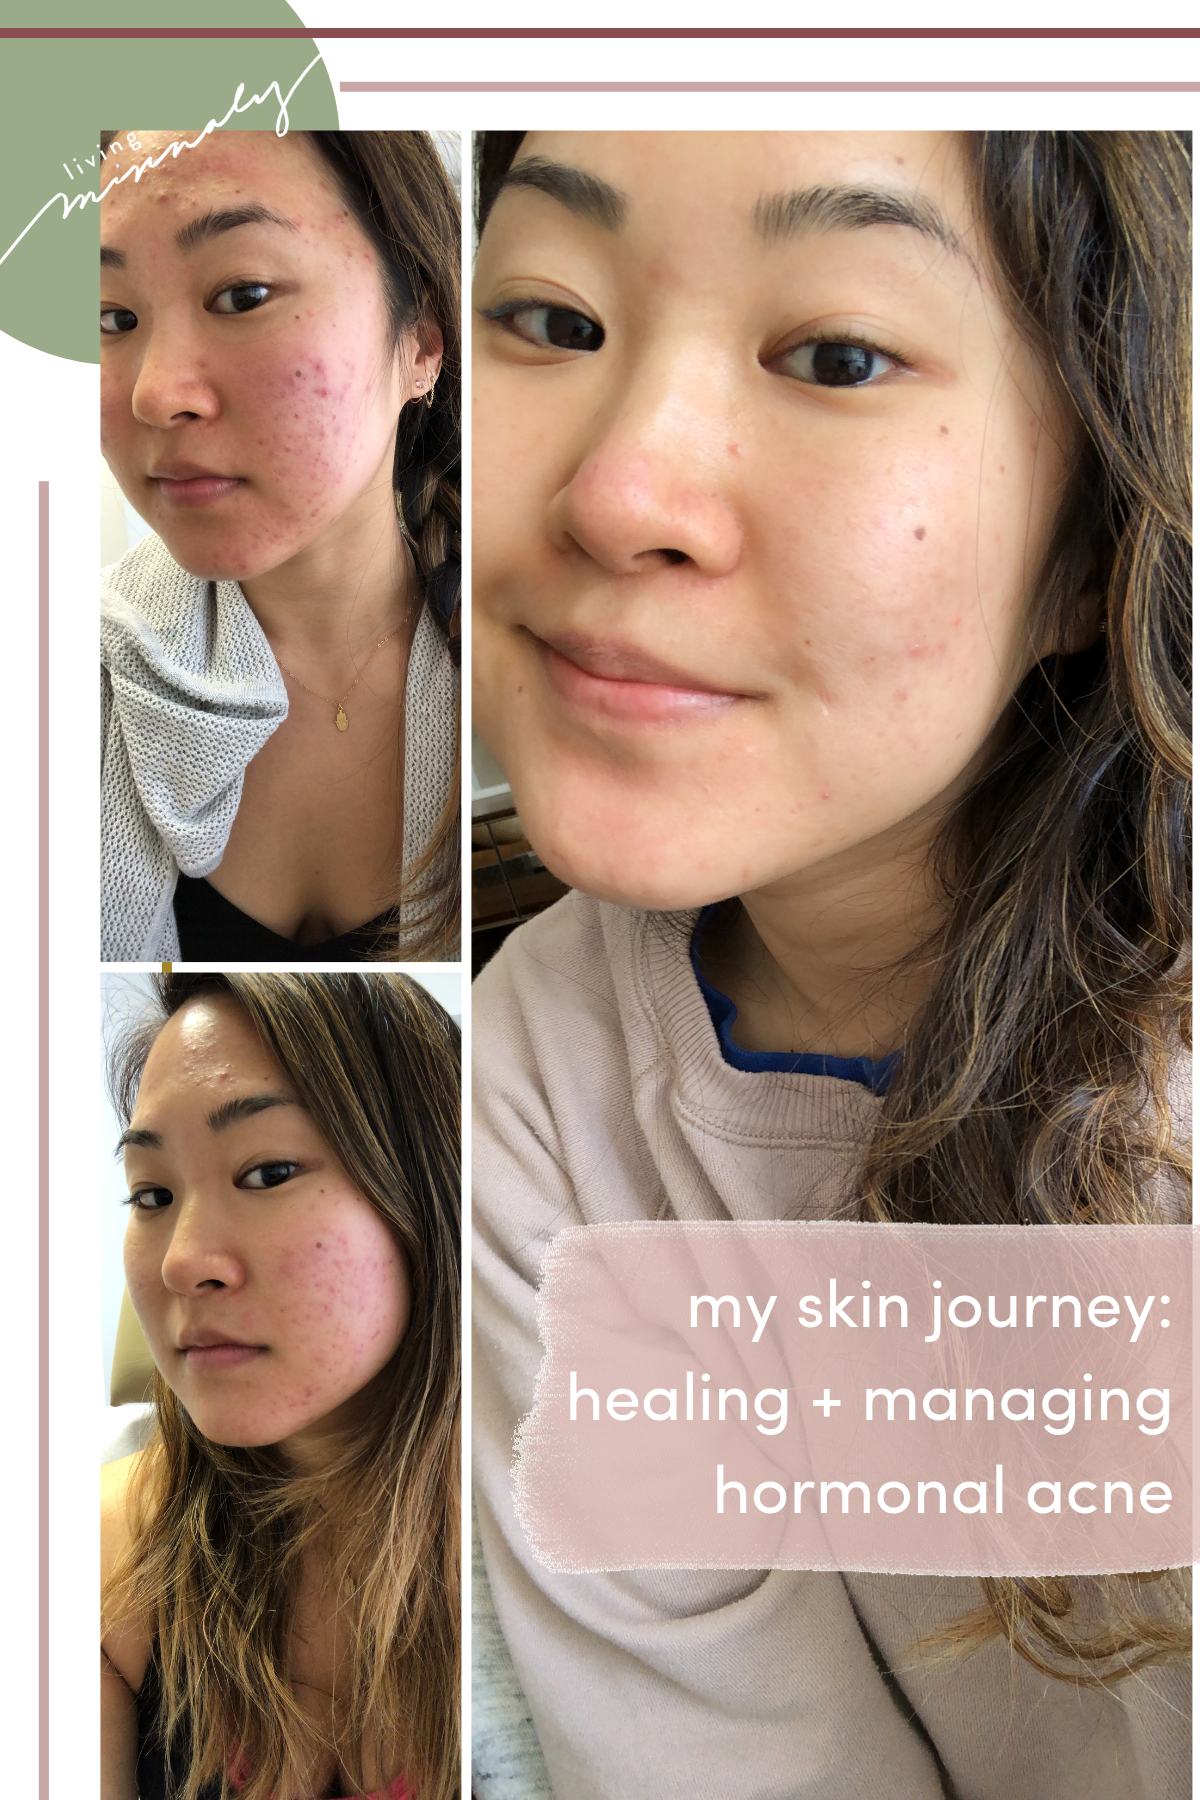 My Hormonal Acne Journey Healing Managing Acne Living Minnaly Hormonal Acne Acne Treatment Skin Care Acne